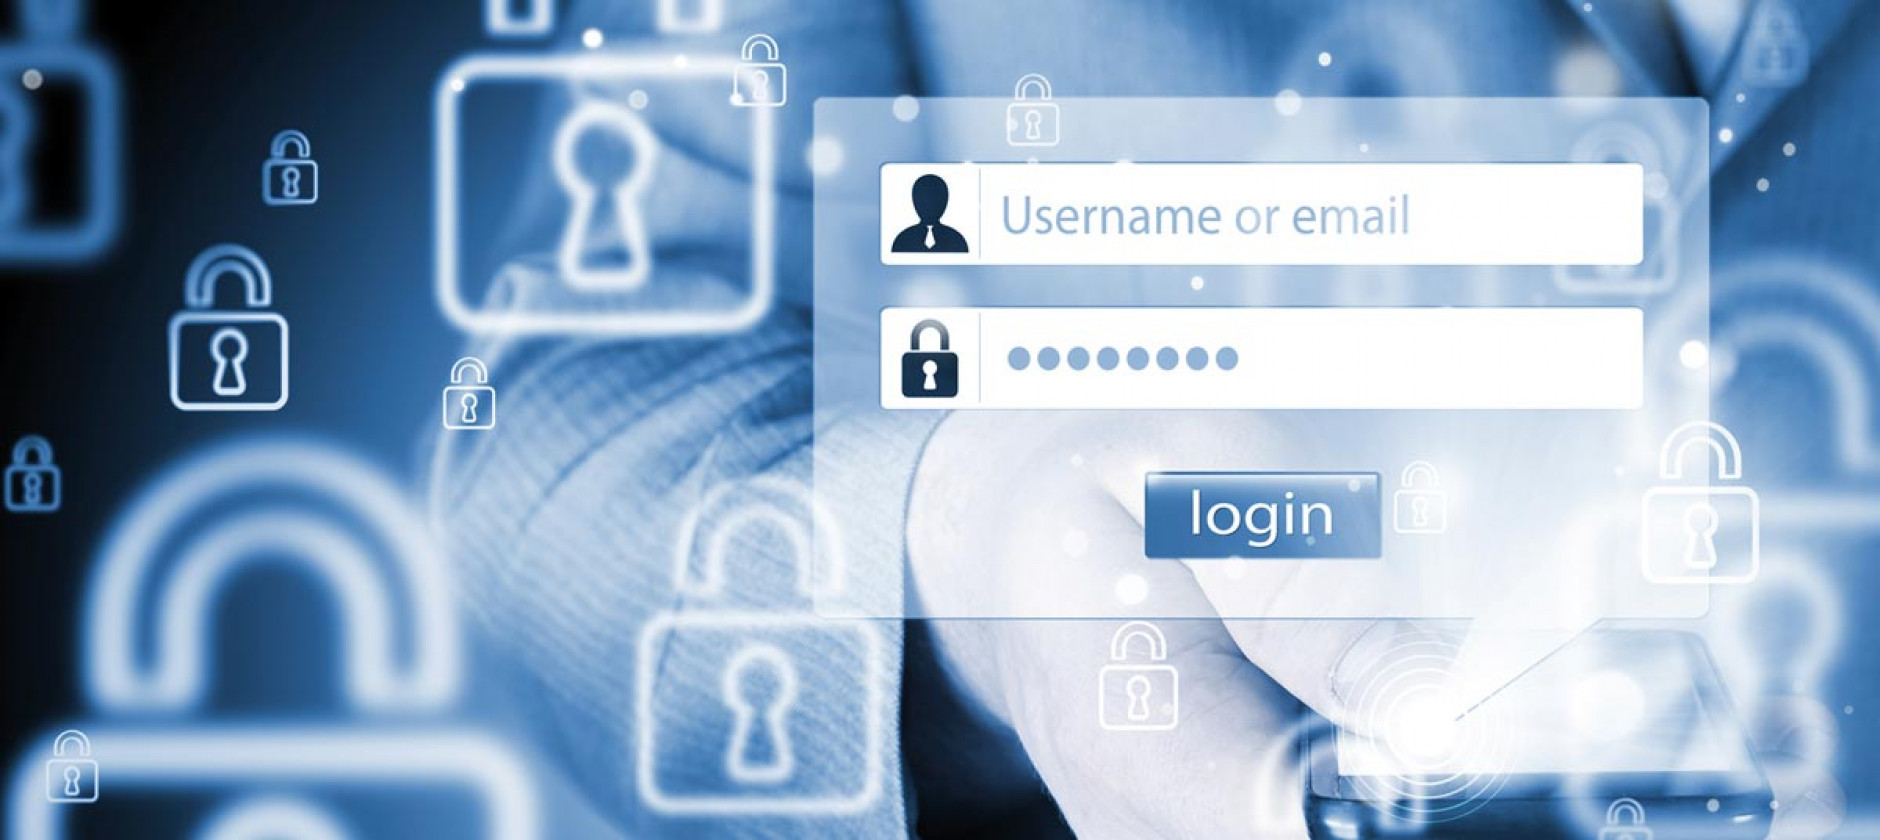 Come impostare una password sicura